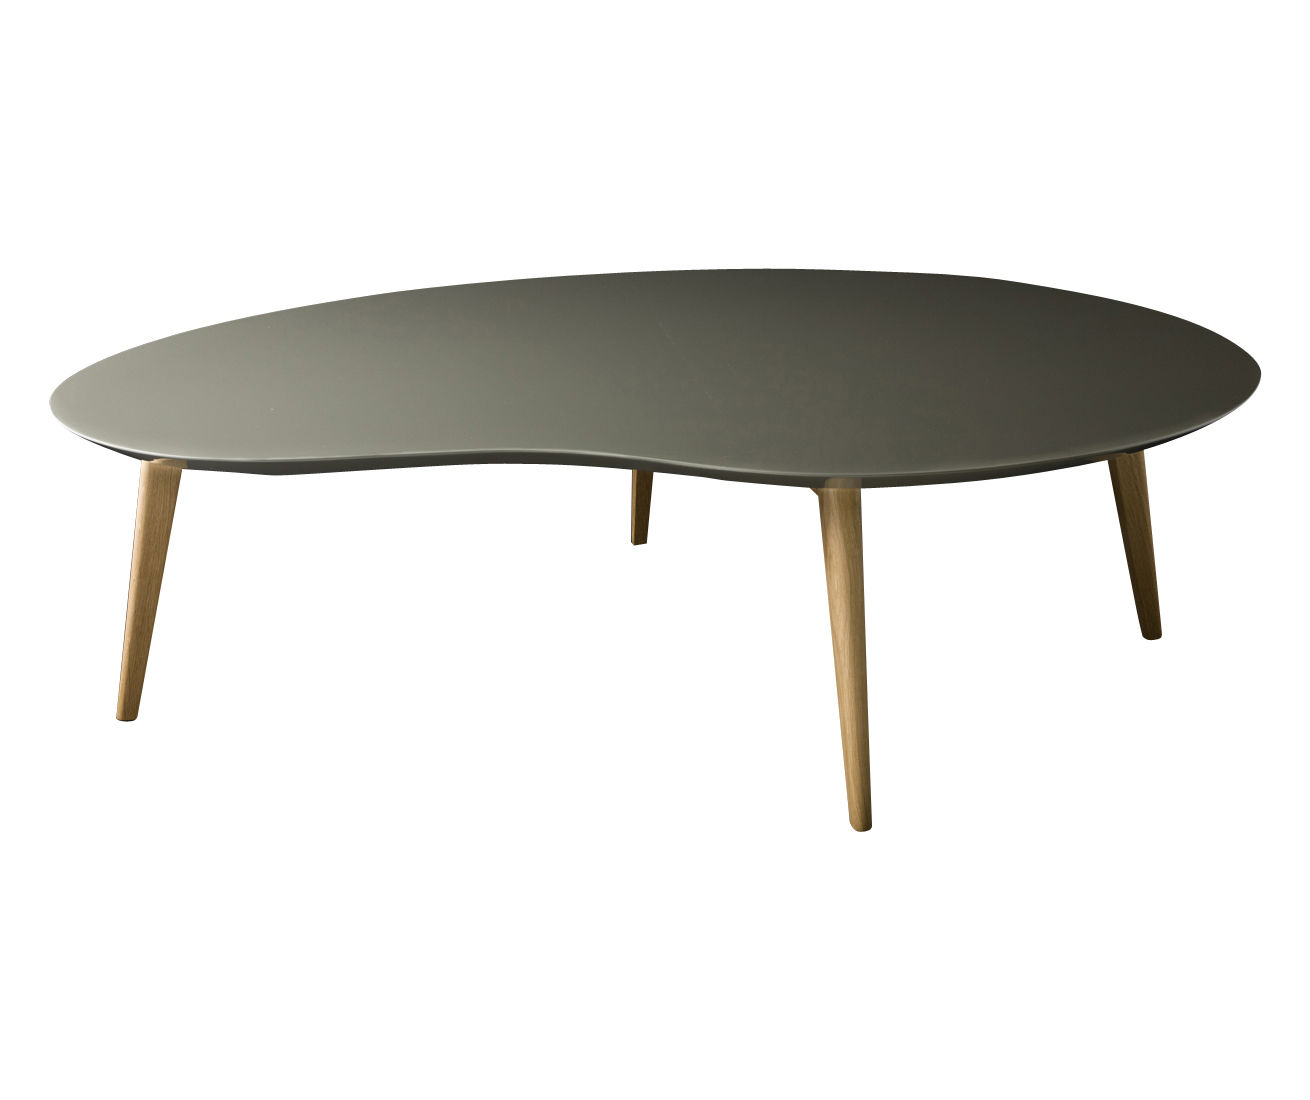 Lalinde xxl coffee table l 130cm wood legs grey by - Table basse bois gris ...